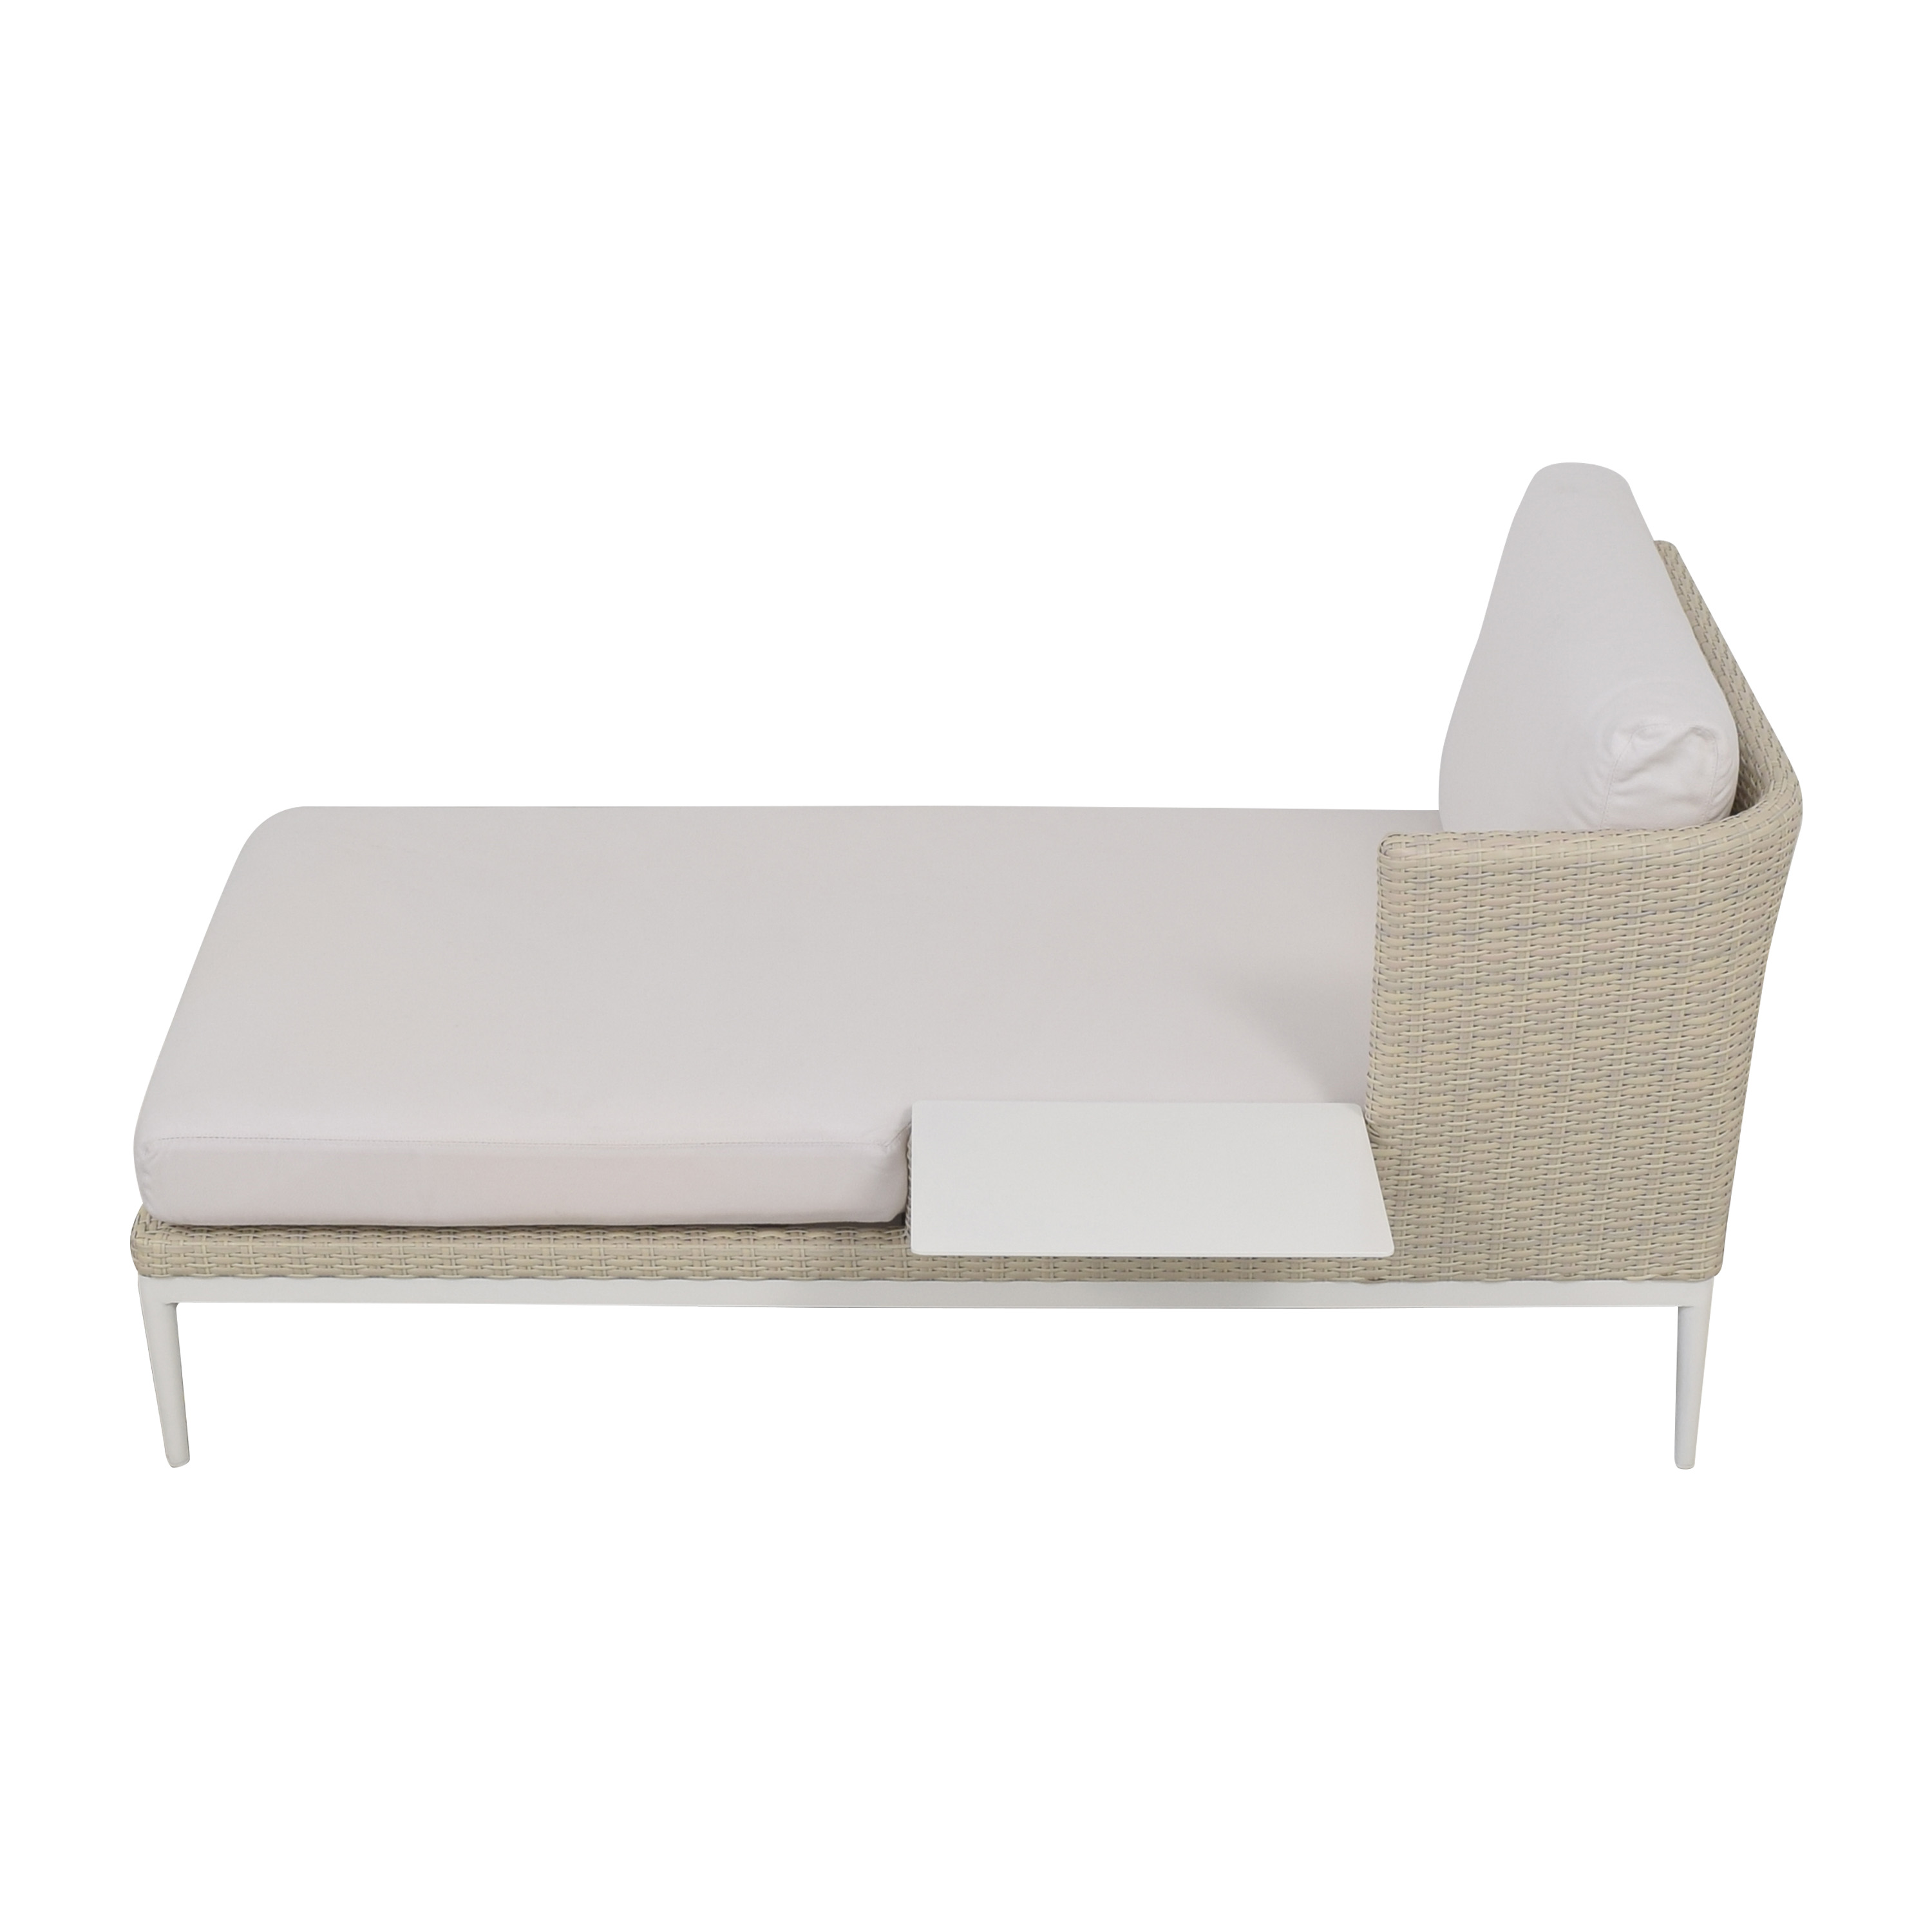 Frontgate Frontgate Porta Forma Palazzo Chaise with Table dimensions